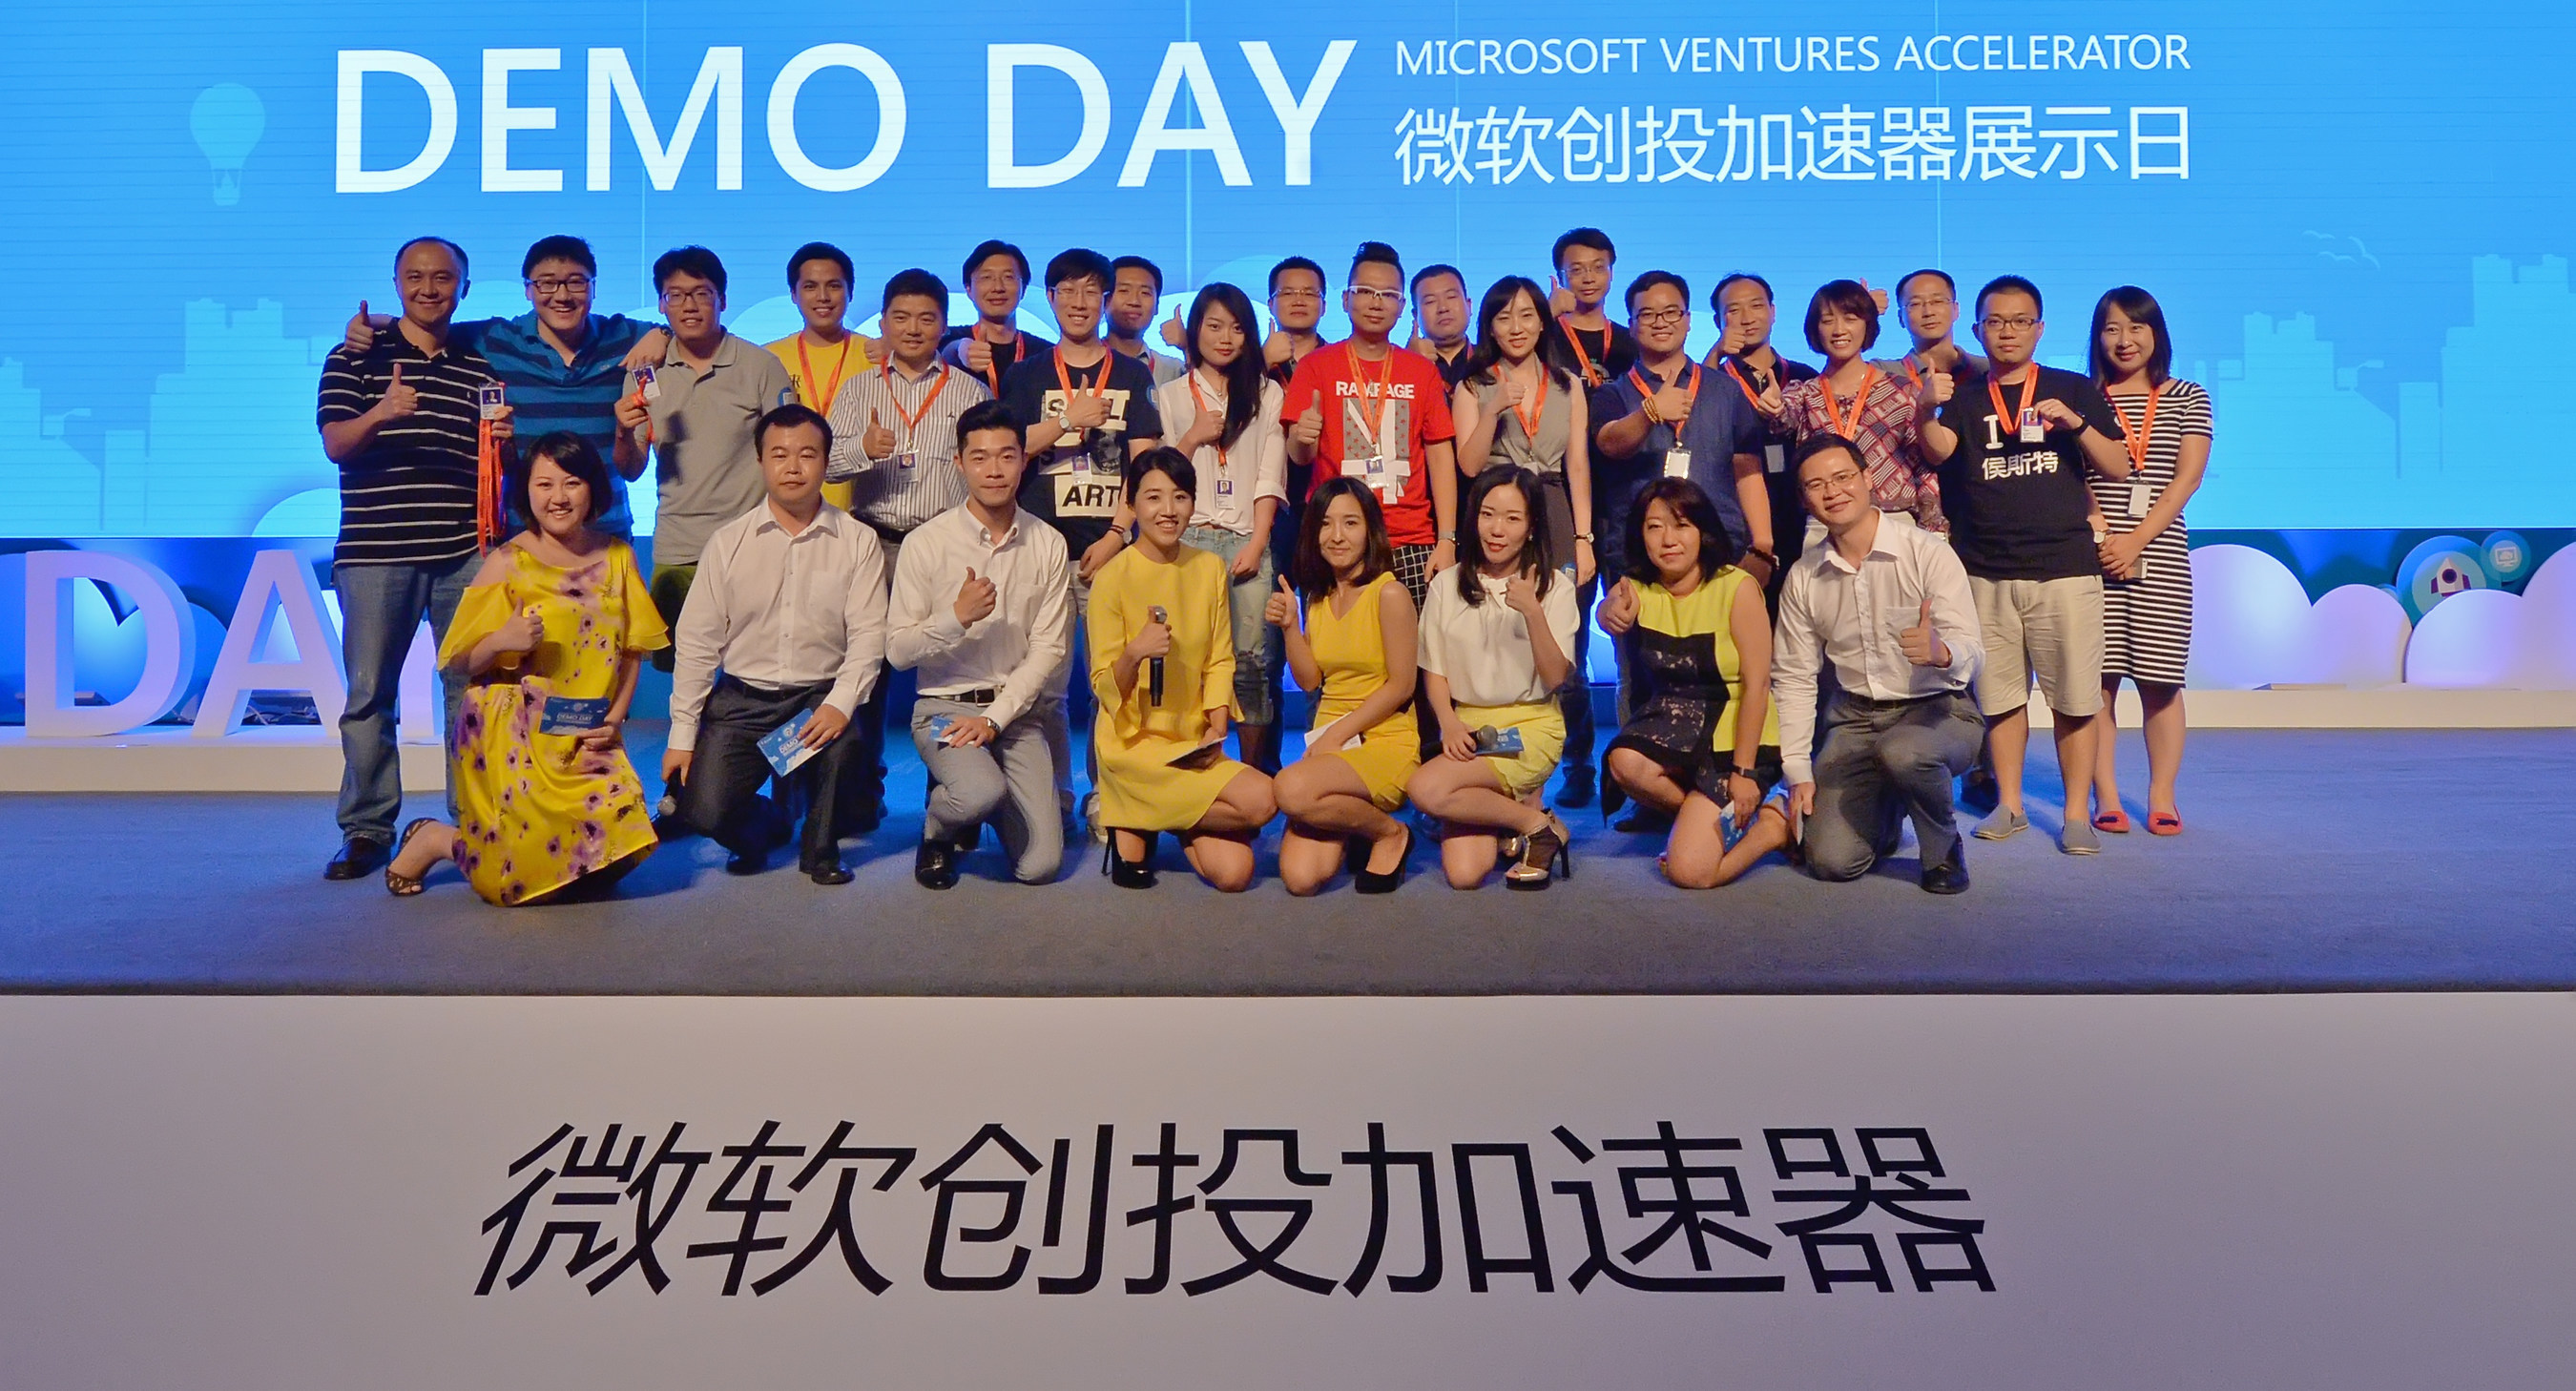 Three Years of Persistence for One Major Hit: Valuation of 106 Graduate Firms from Microsoft Venture Accelerator Beijing Reaches 23.4 Billion RMB